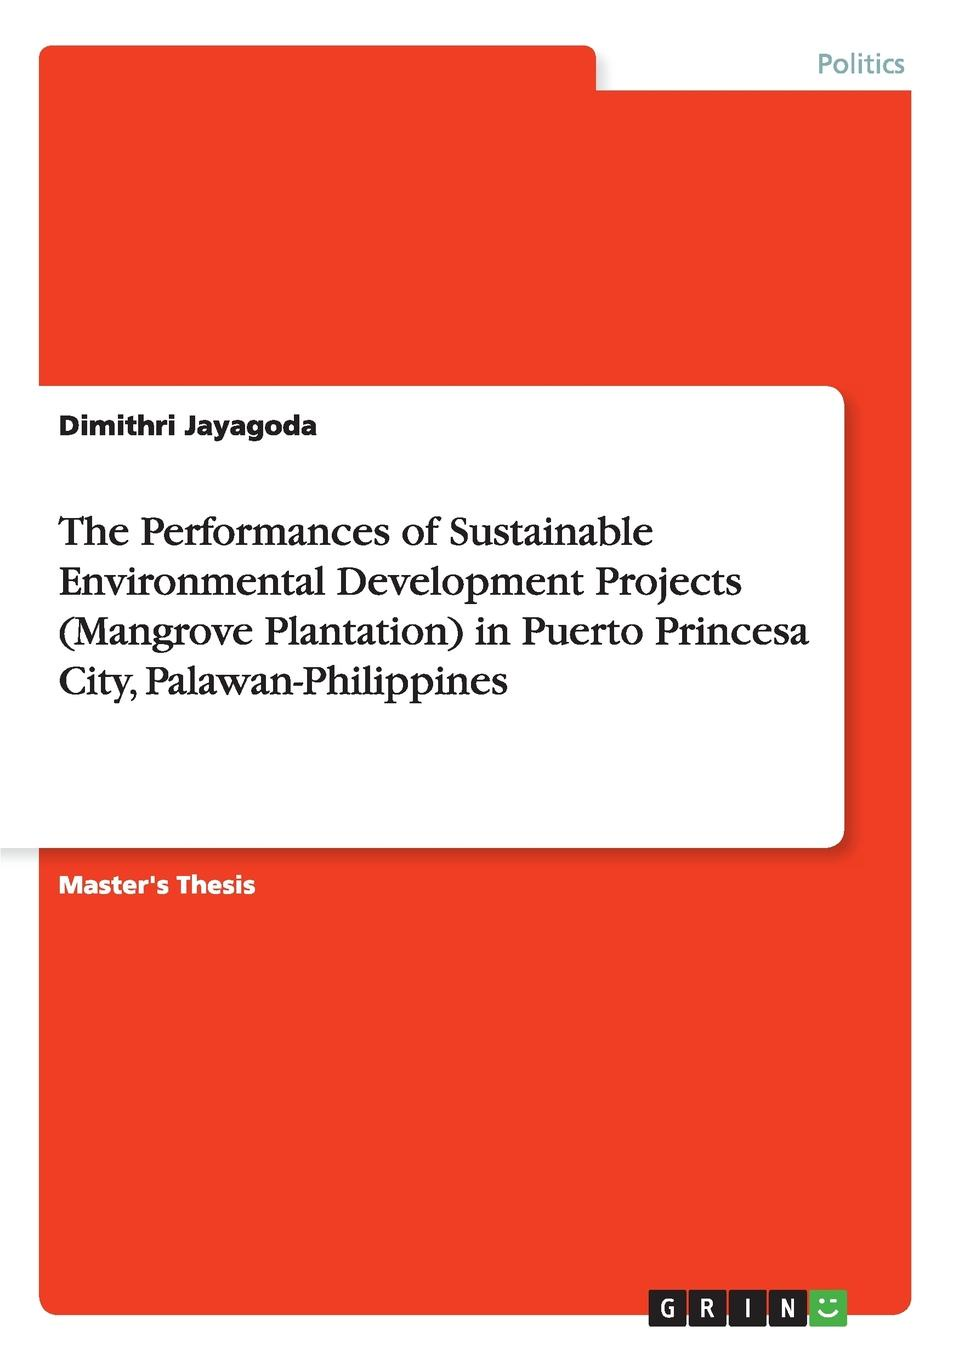 Dimithri Jayagoda The Performances of Sustainable Environmental Development Projects (Mangrove Plantation) in Puerto Princesa City, Palawan-Philippines